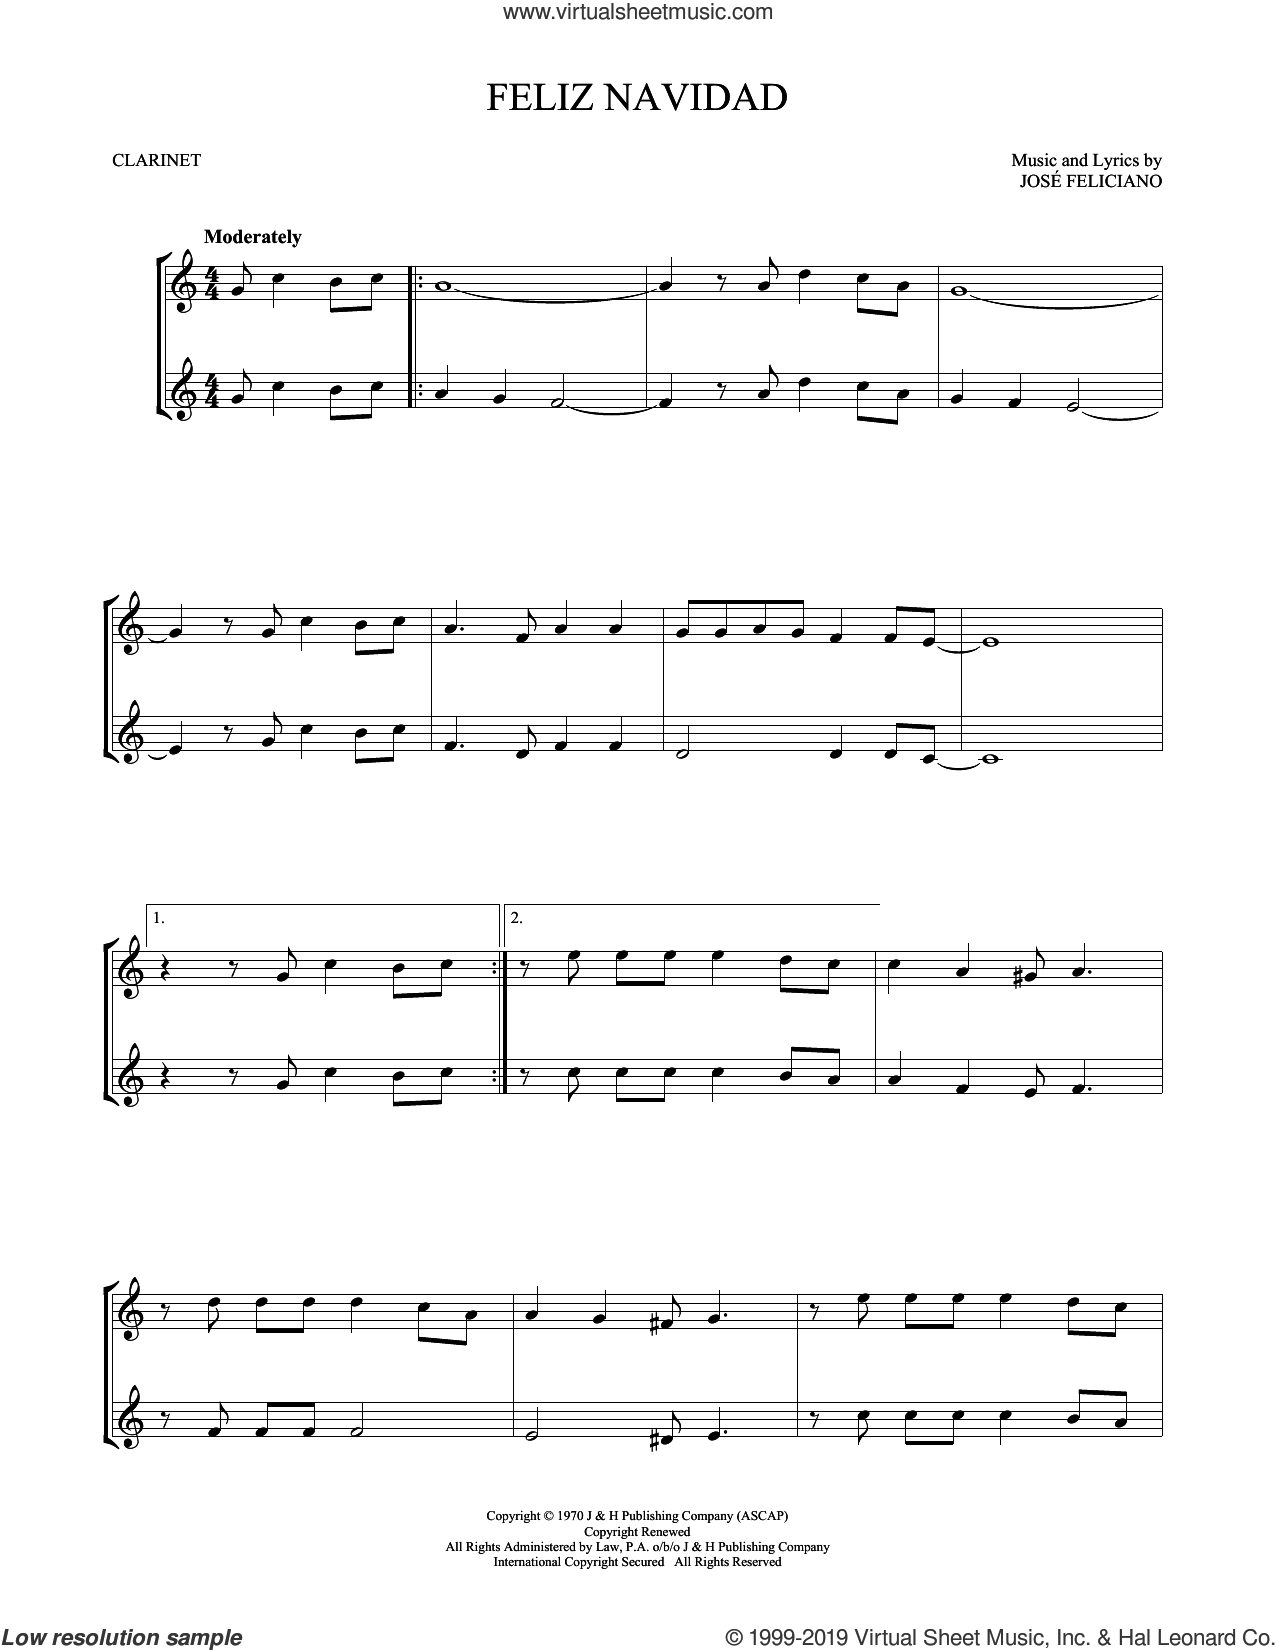 Feliz Navidad sheet music for two clarinets (duets) by Jose Feliciano, intermediate skill level